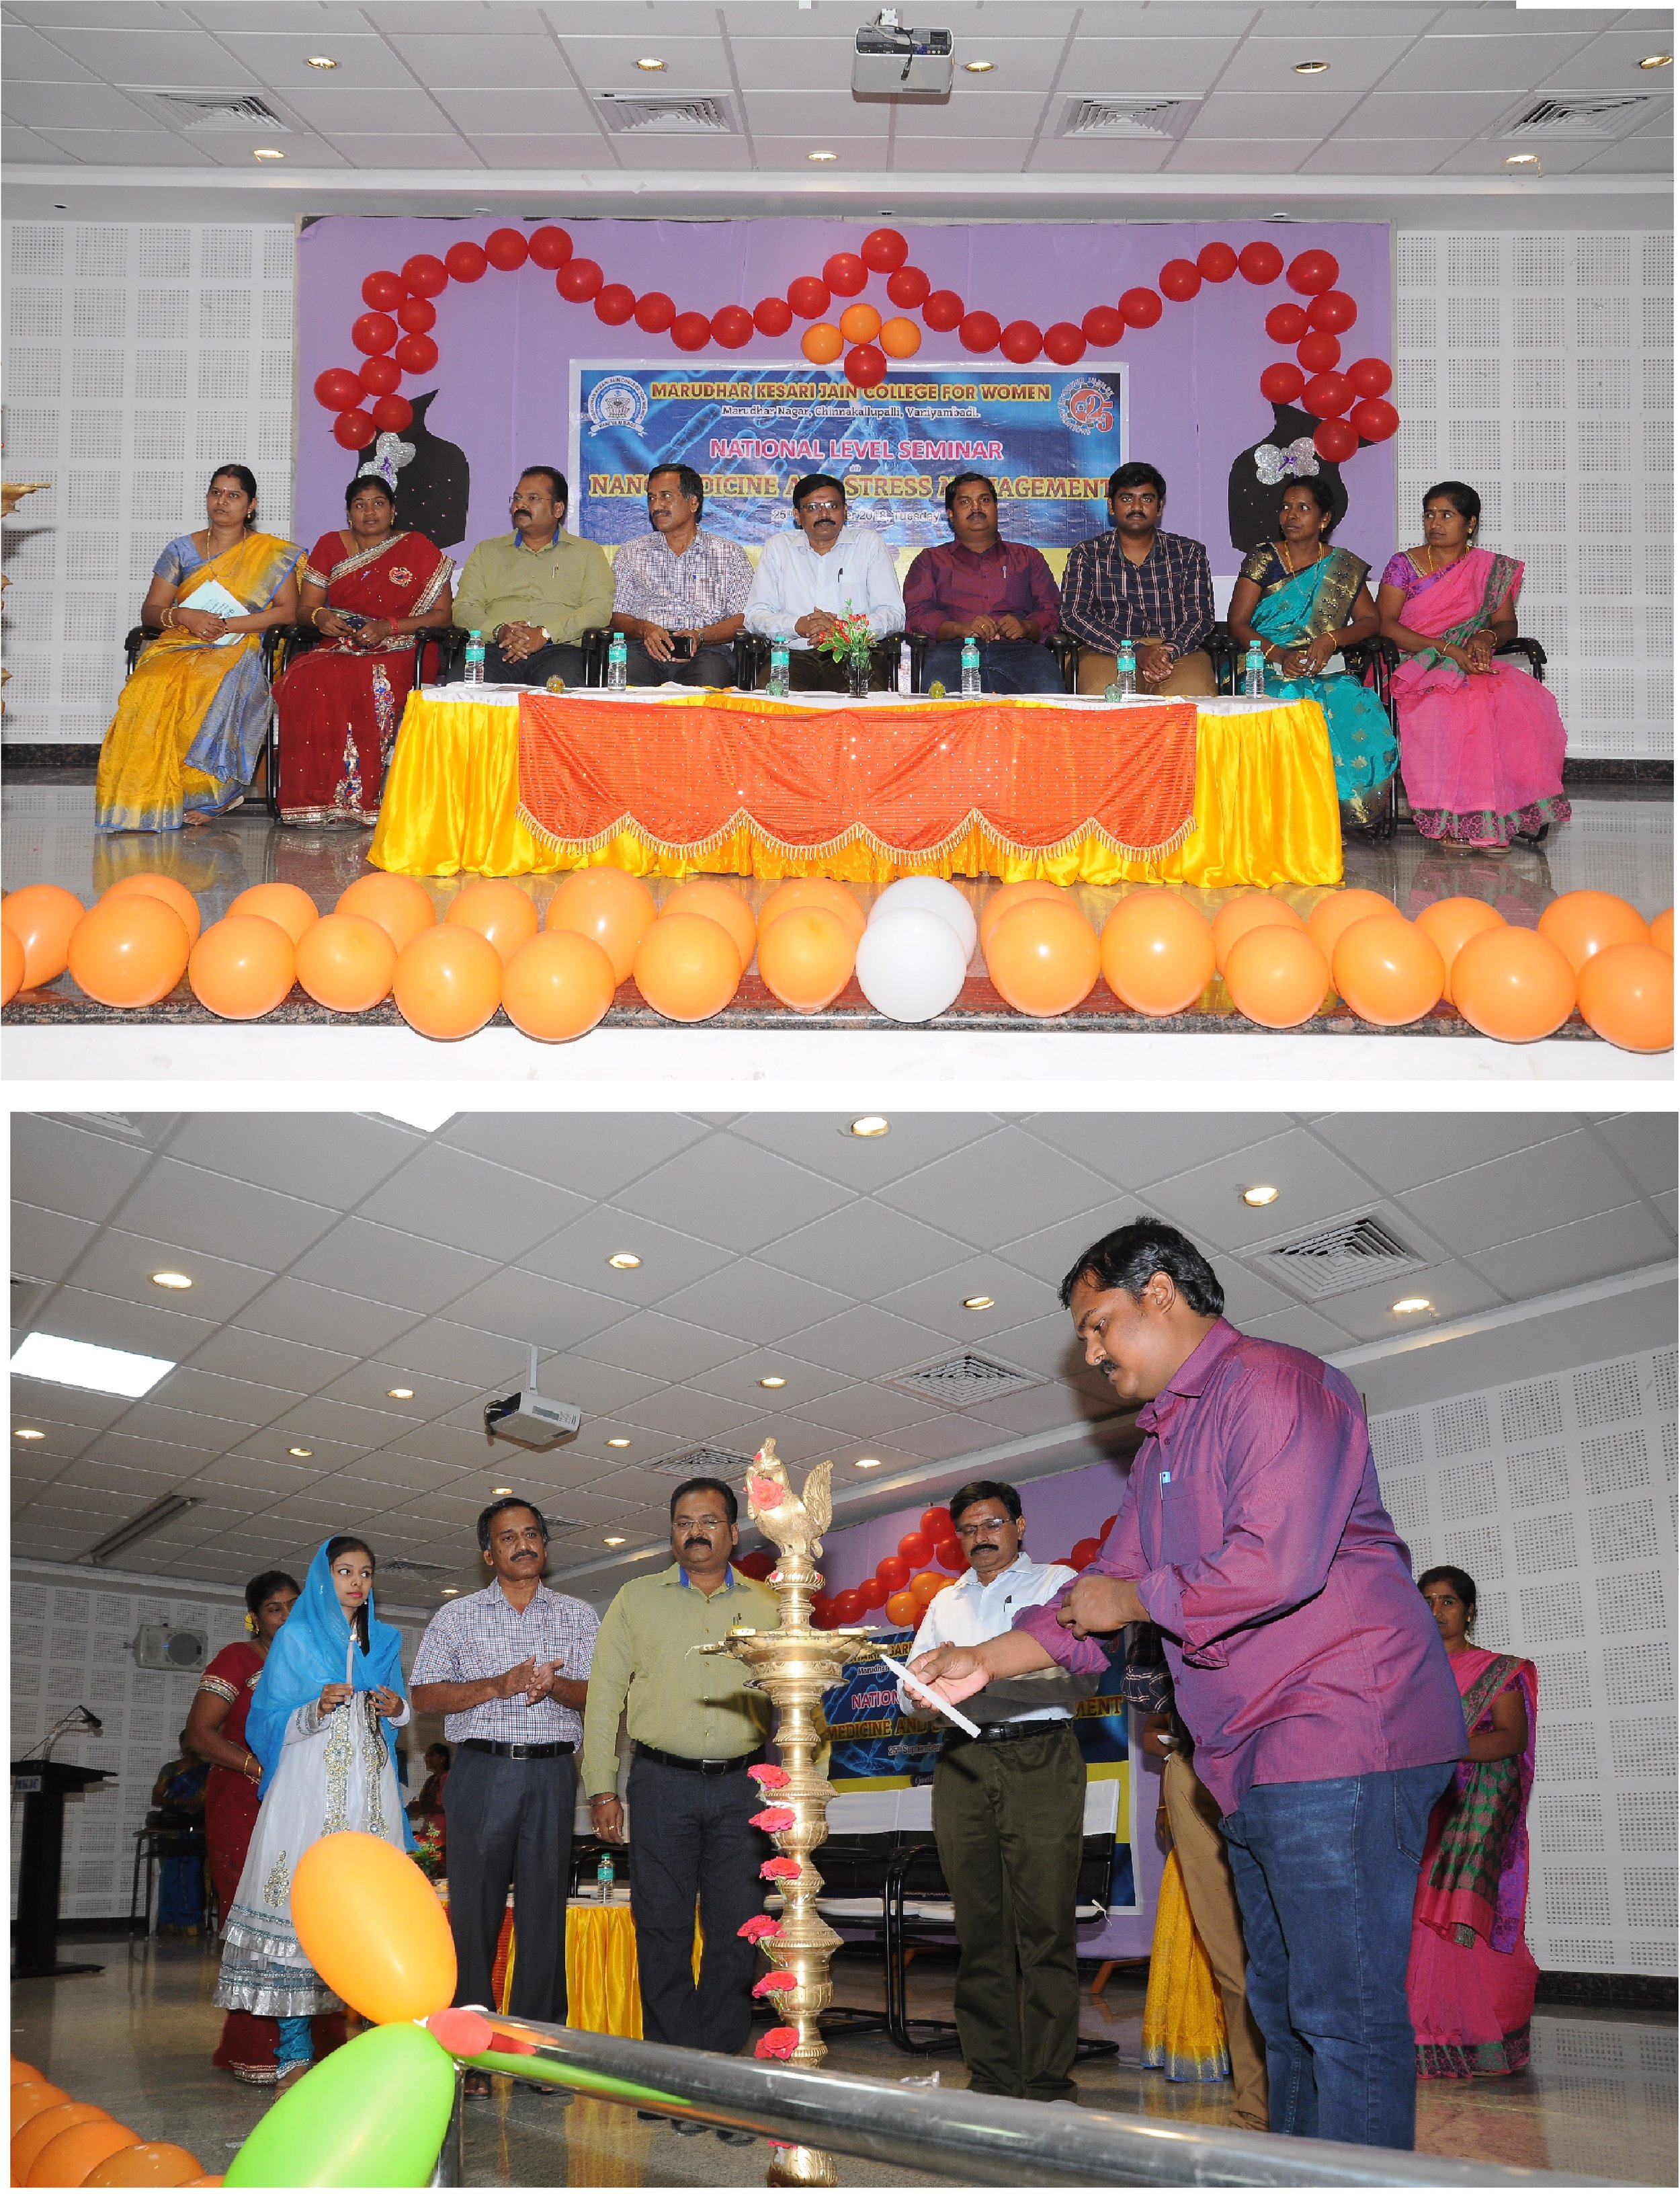 - Chief Guest and delivered guest LectureNational Level Conference on Nanomedicine and Stress management on Nanobiomedicine Organised by PG and Research Department of Biochemistry, Biotechnology and Nutrition, FSM and Dietetics, Maradhar Kesari Jain College for Women, Vaniambadi, TN, India.